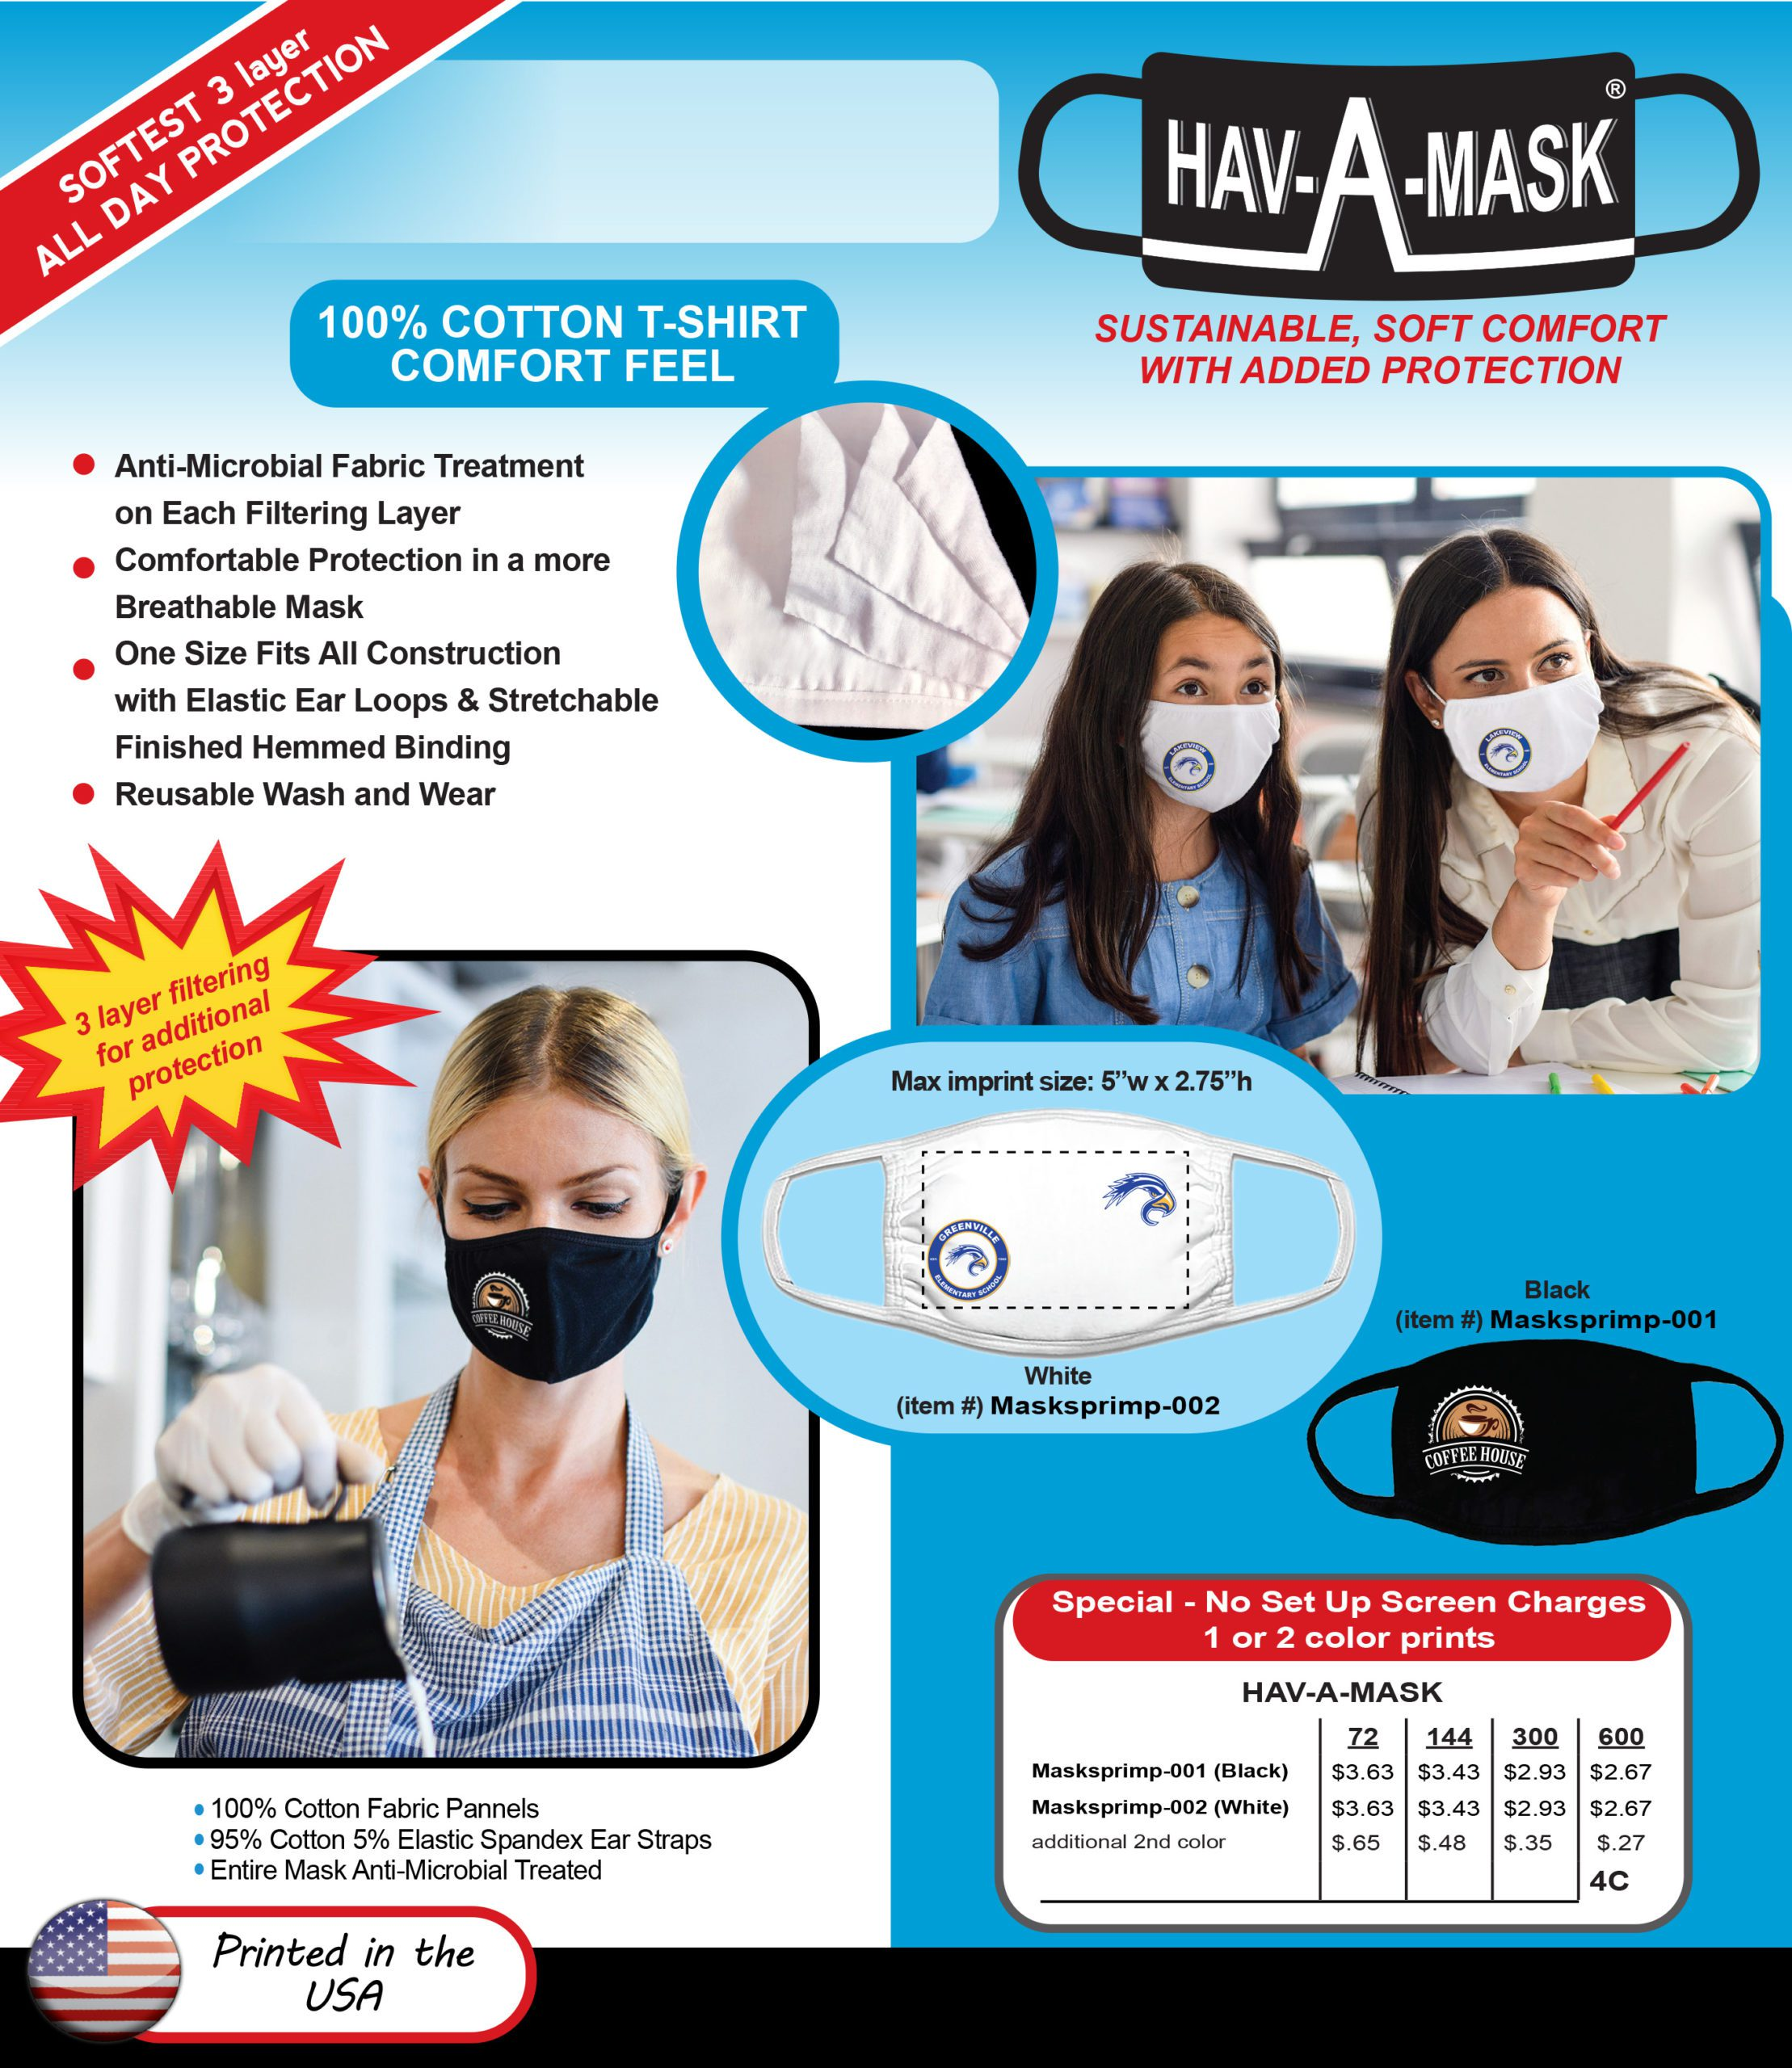 masks diplayed on women in work and school